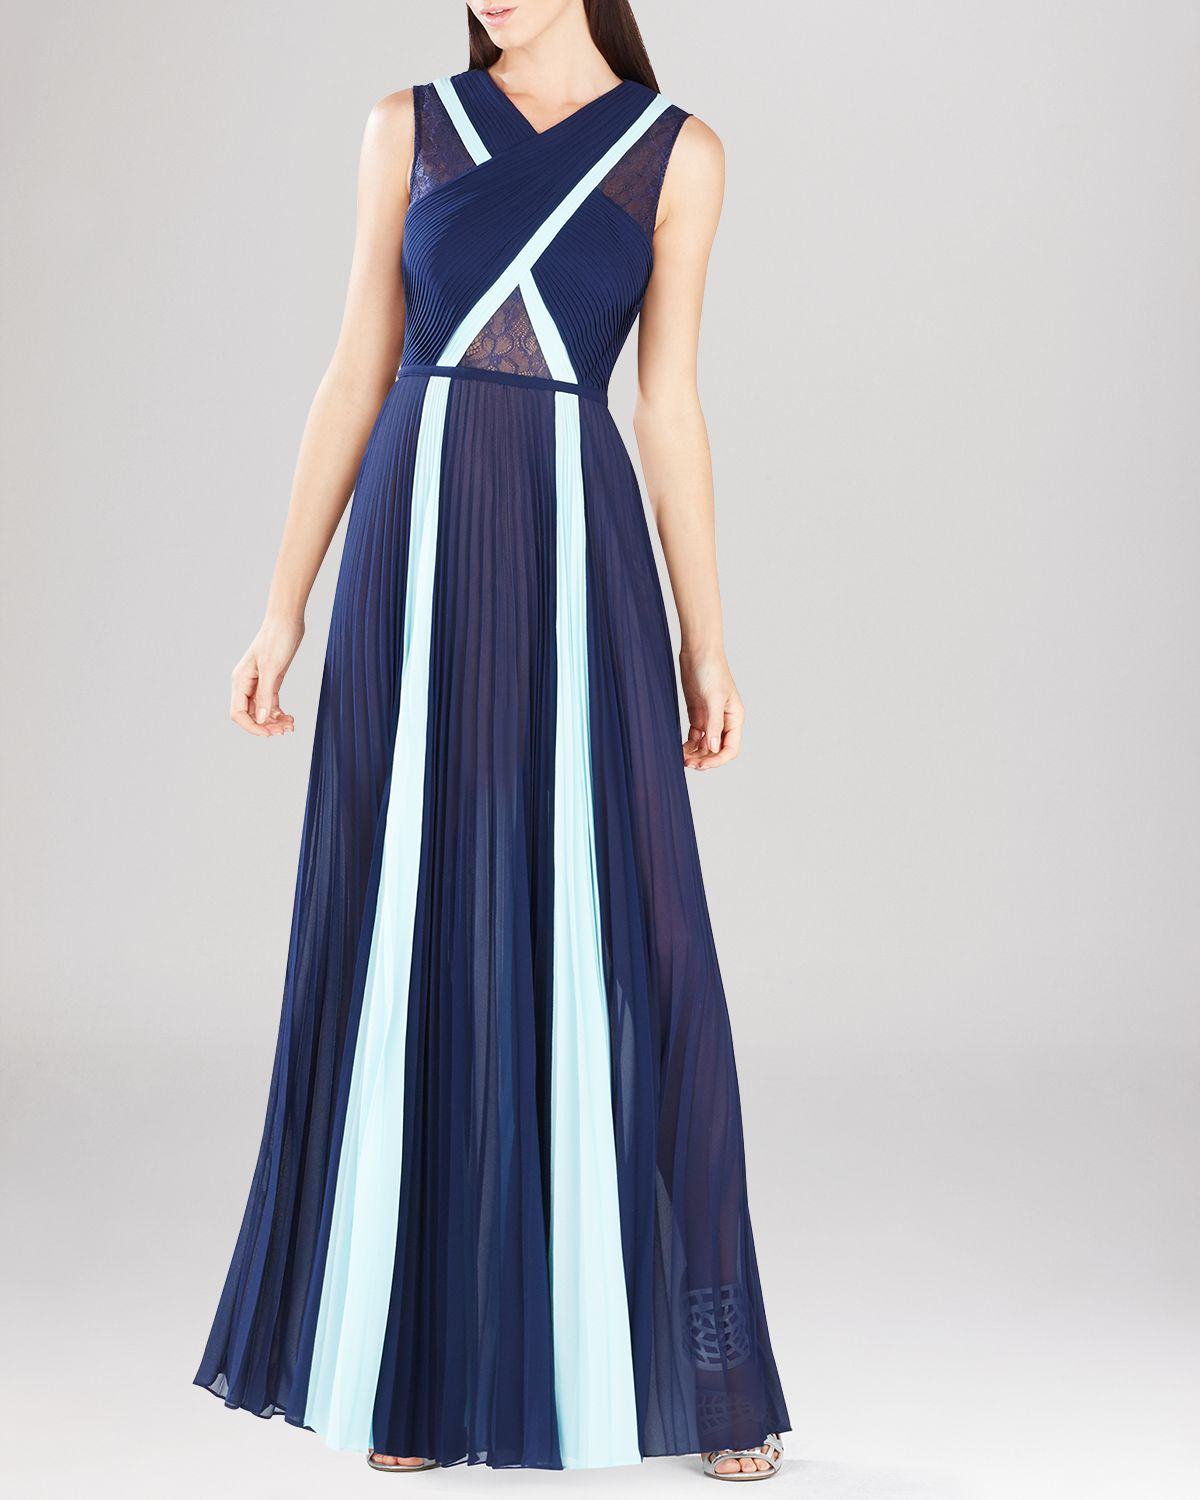 1f43166dc14b Bcbg Navy Blue Gown - Best Picture Of Blue Imageve.Org